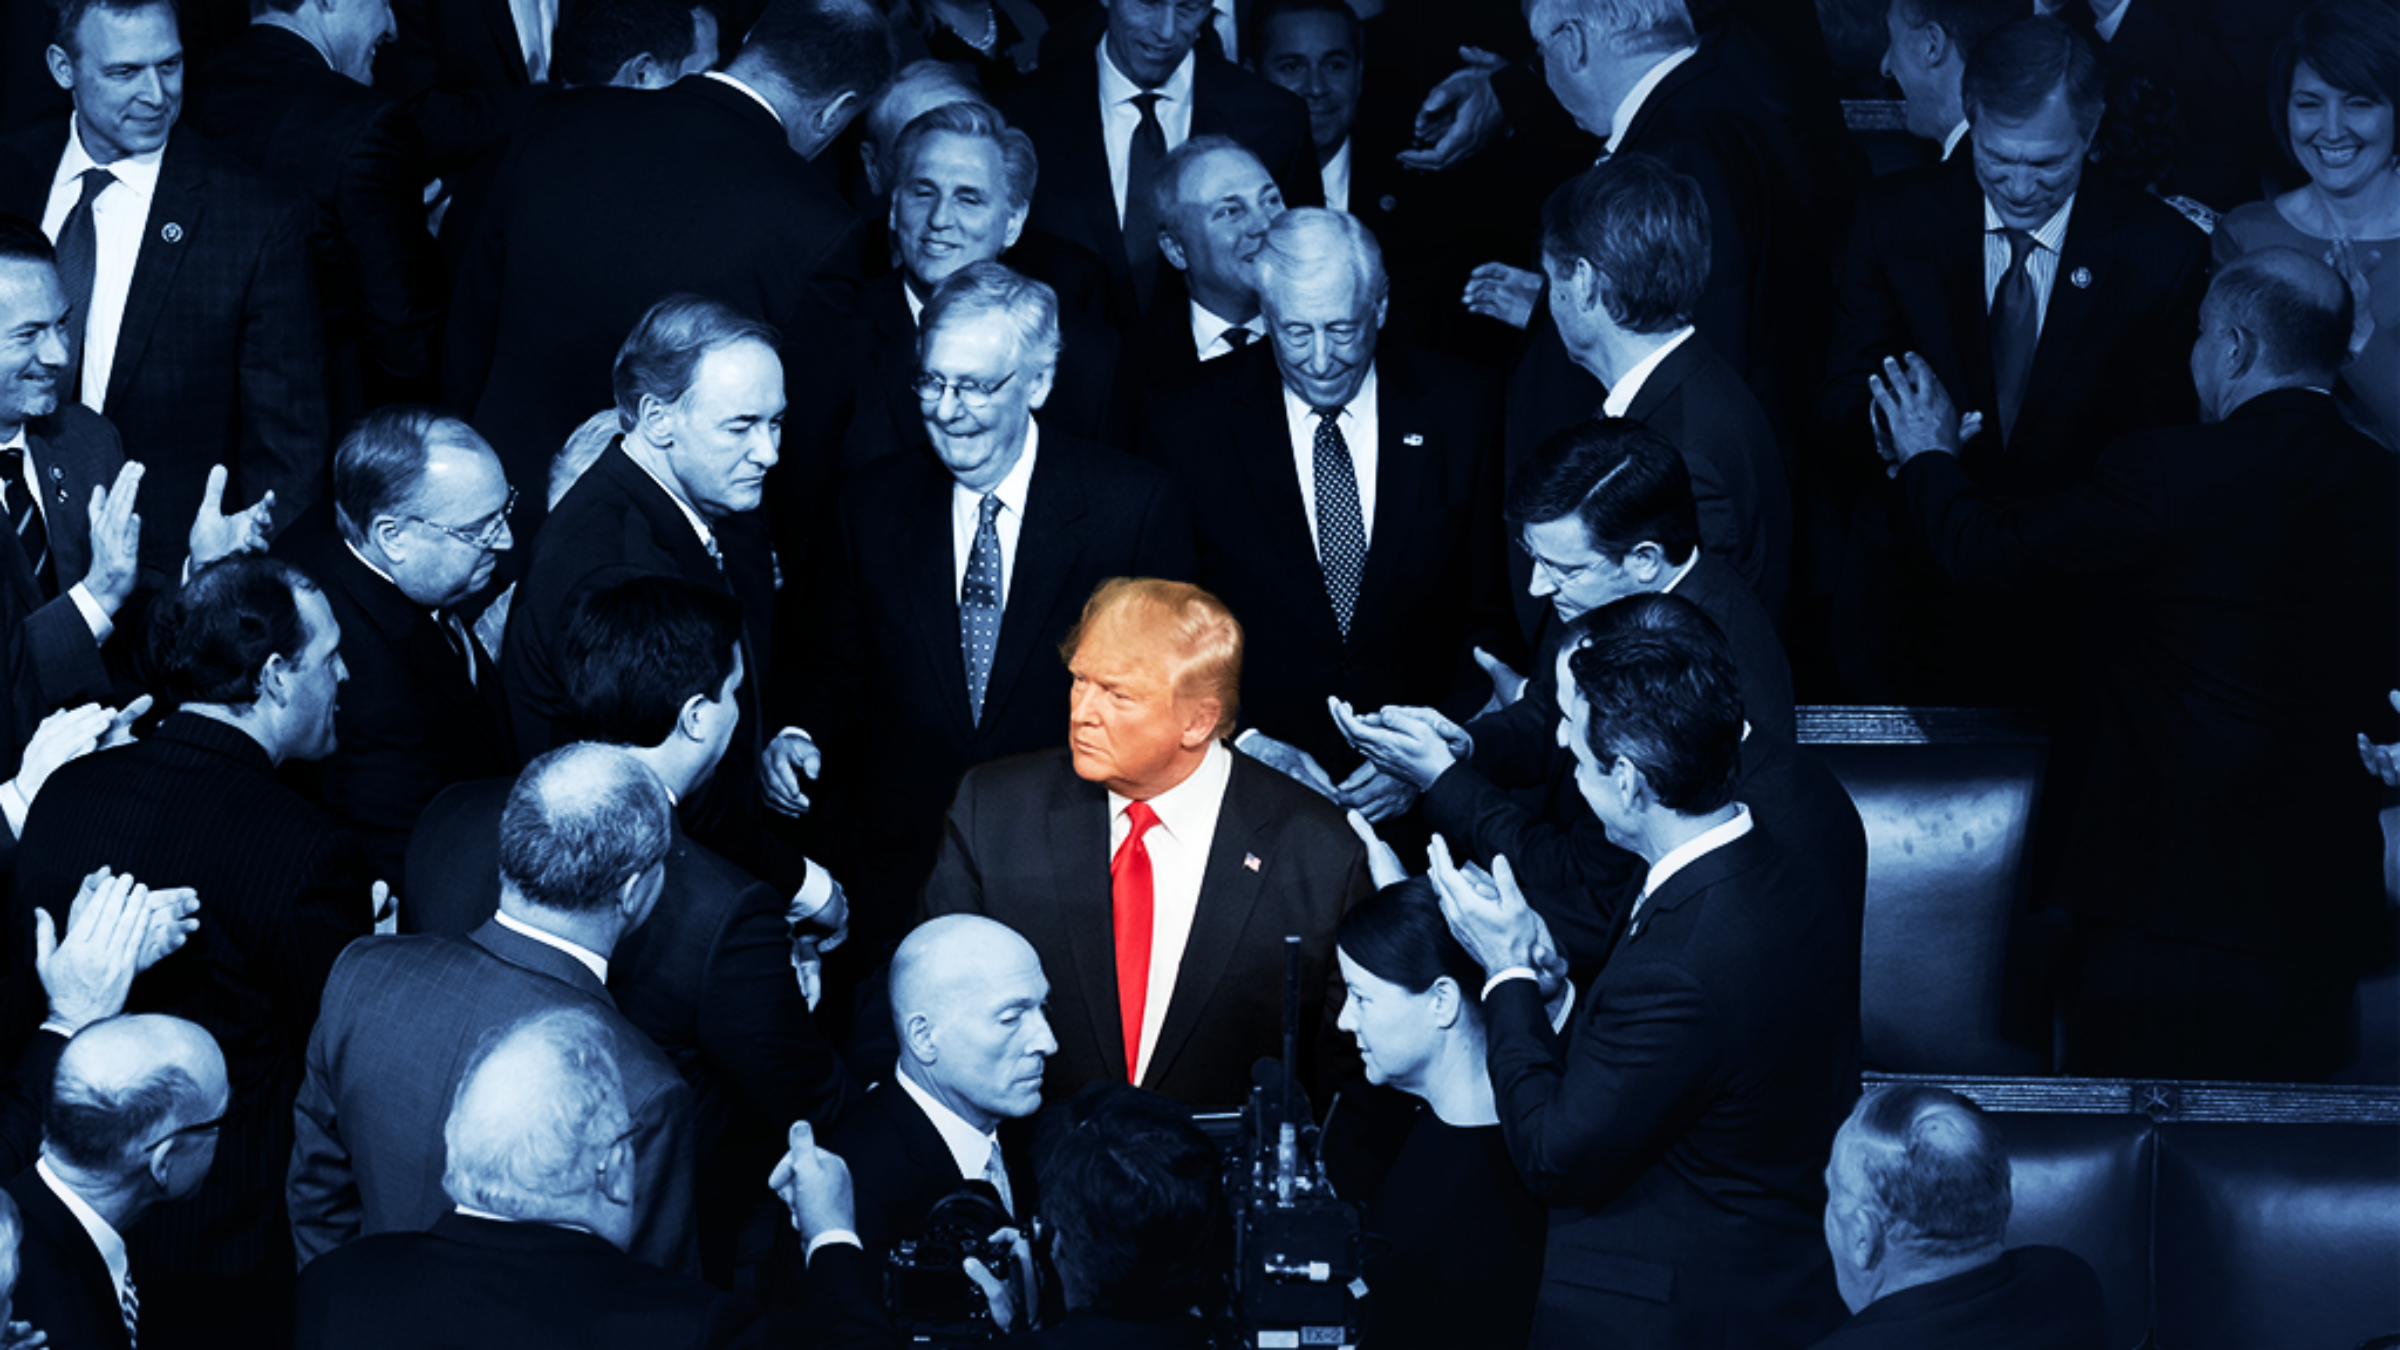 Trump next to Mitch McConnell and others at the State of the Union. Image is tinted navy except Trump.